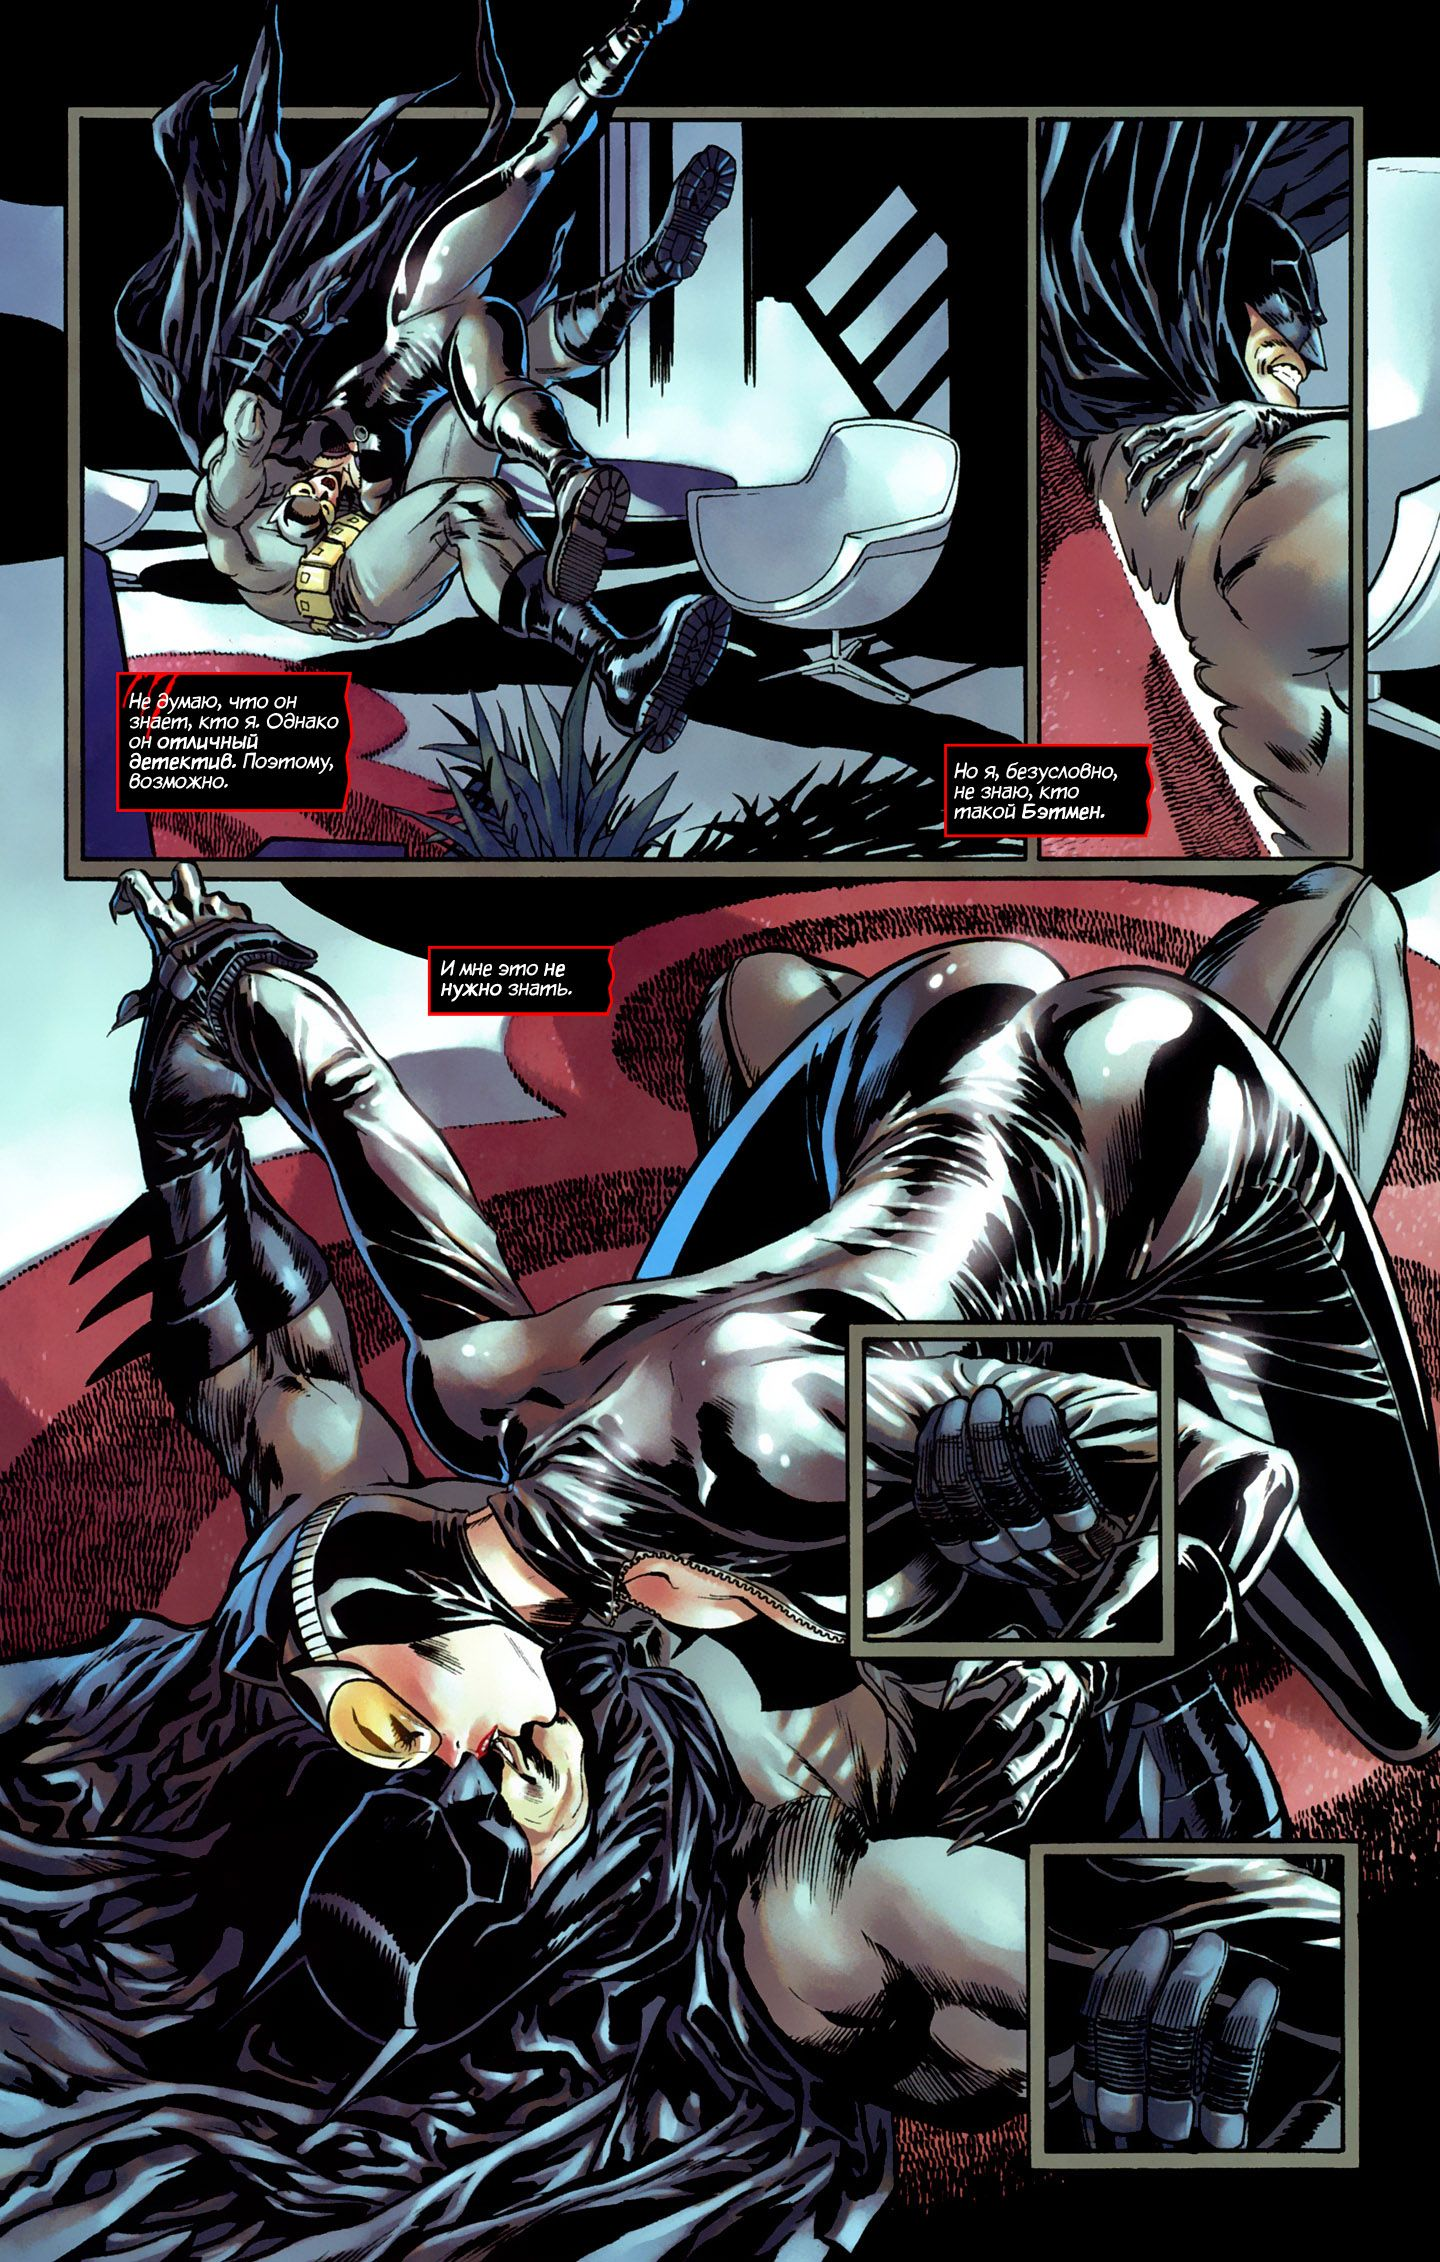 Batman having sex with cat women